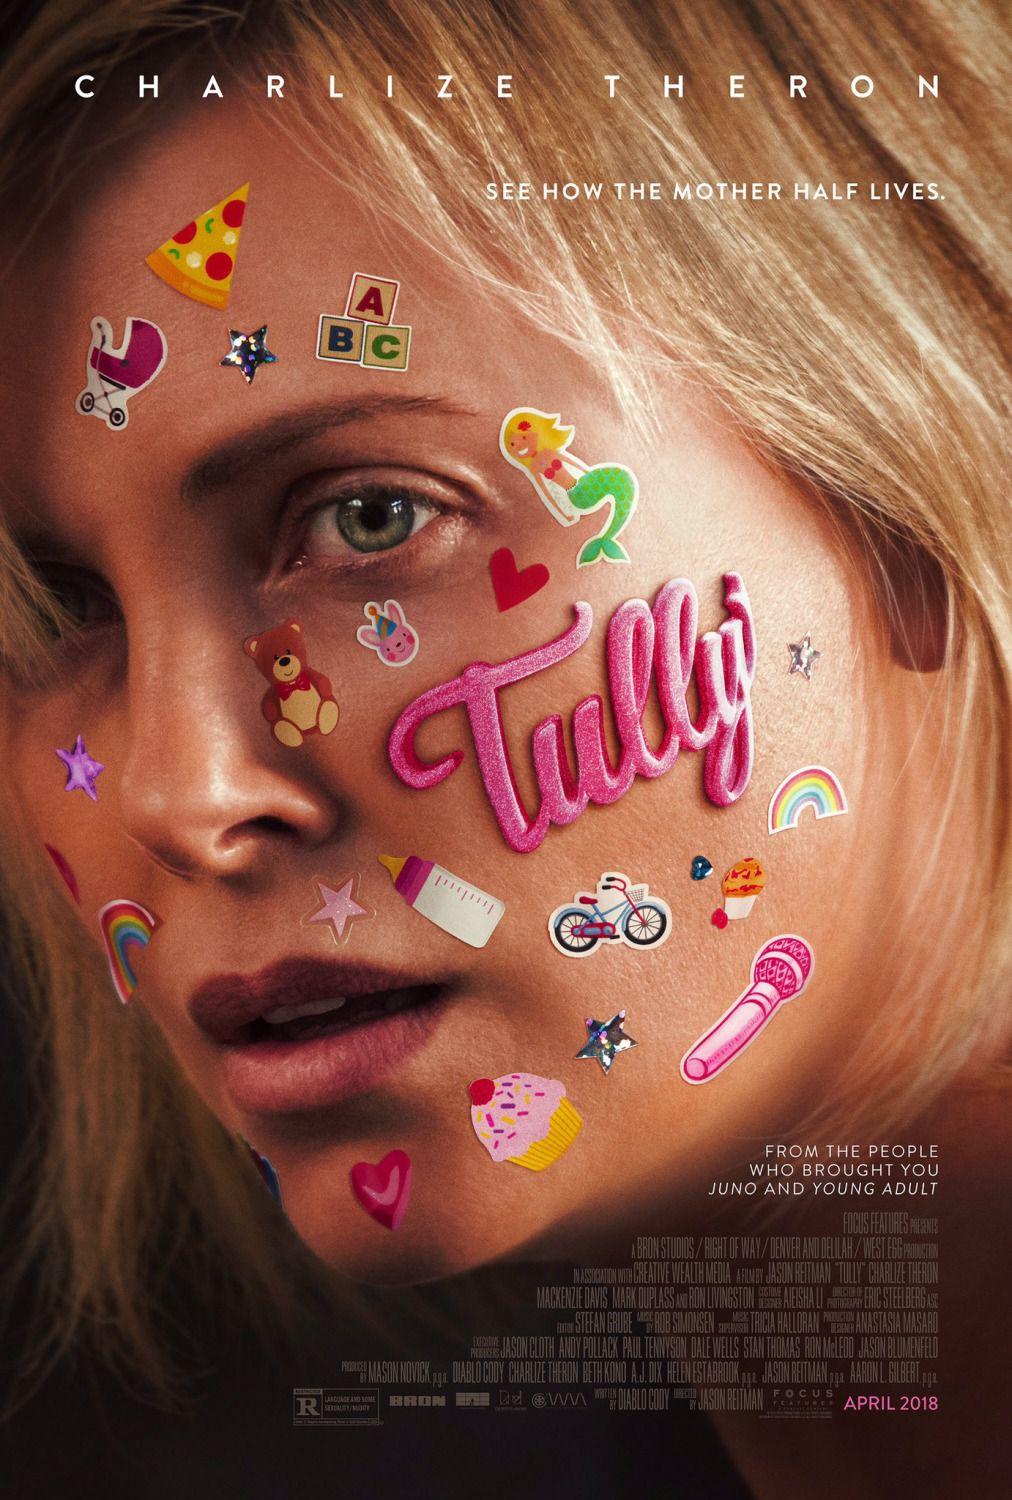 Tully - Charlize Theron - film poster